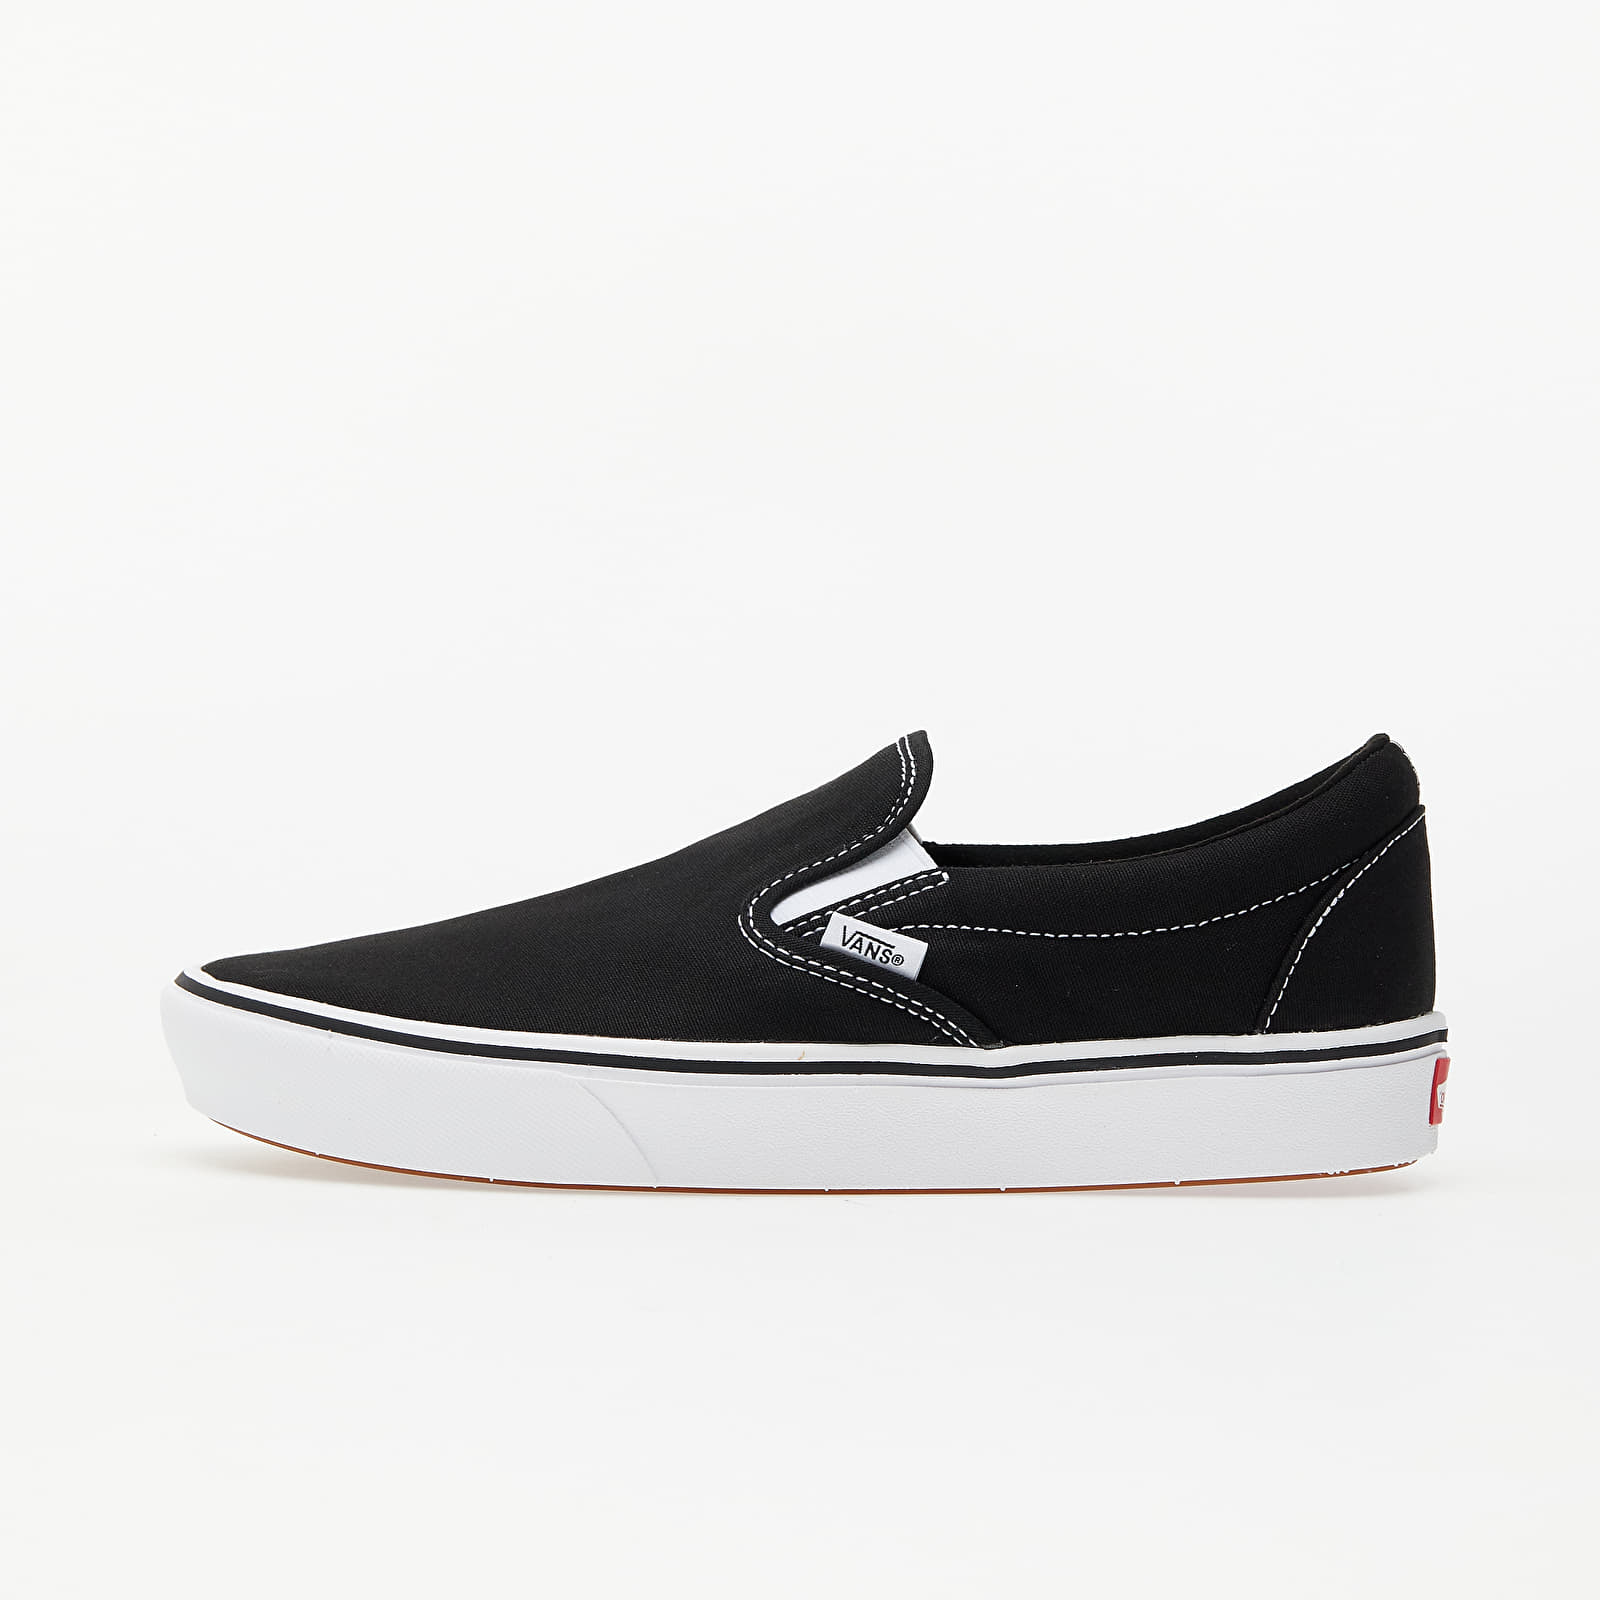 Vans ComfyCush Slip-On (Classic) Black/ True White EUR 42.5